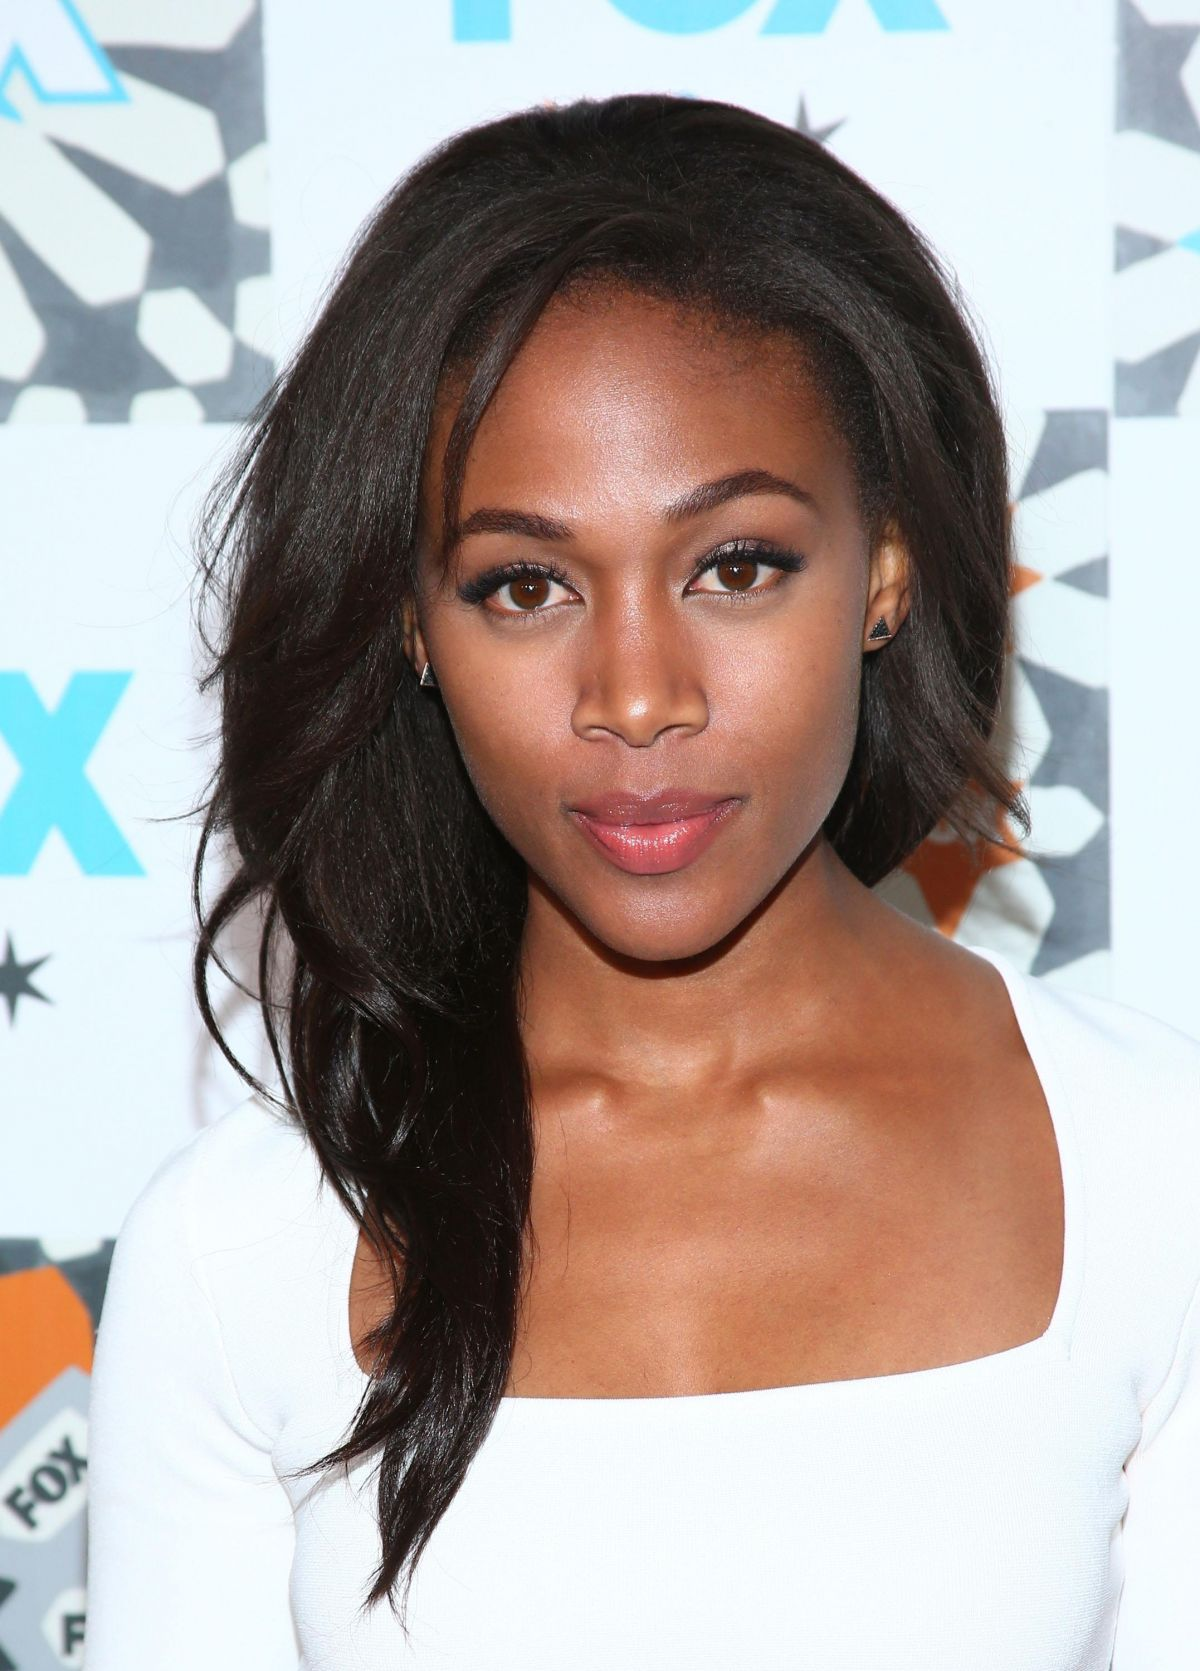 Photos Nicole Beharie naked (21 foto and video), Pussy, Cleavage, Boobs, in bikini 2019